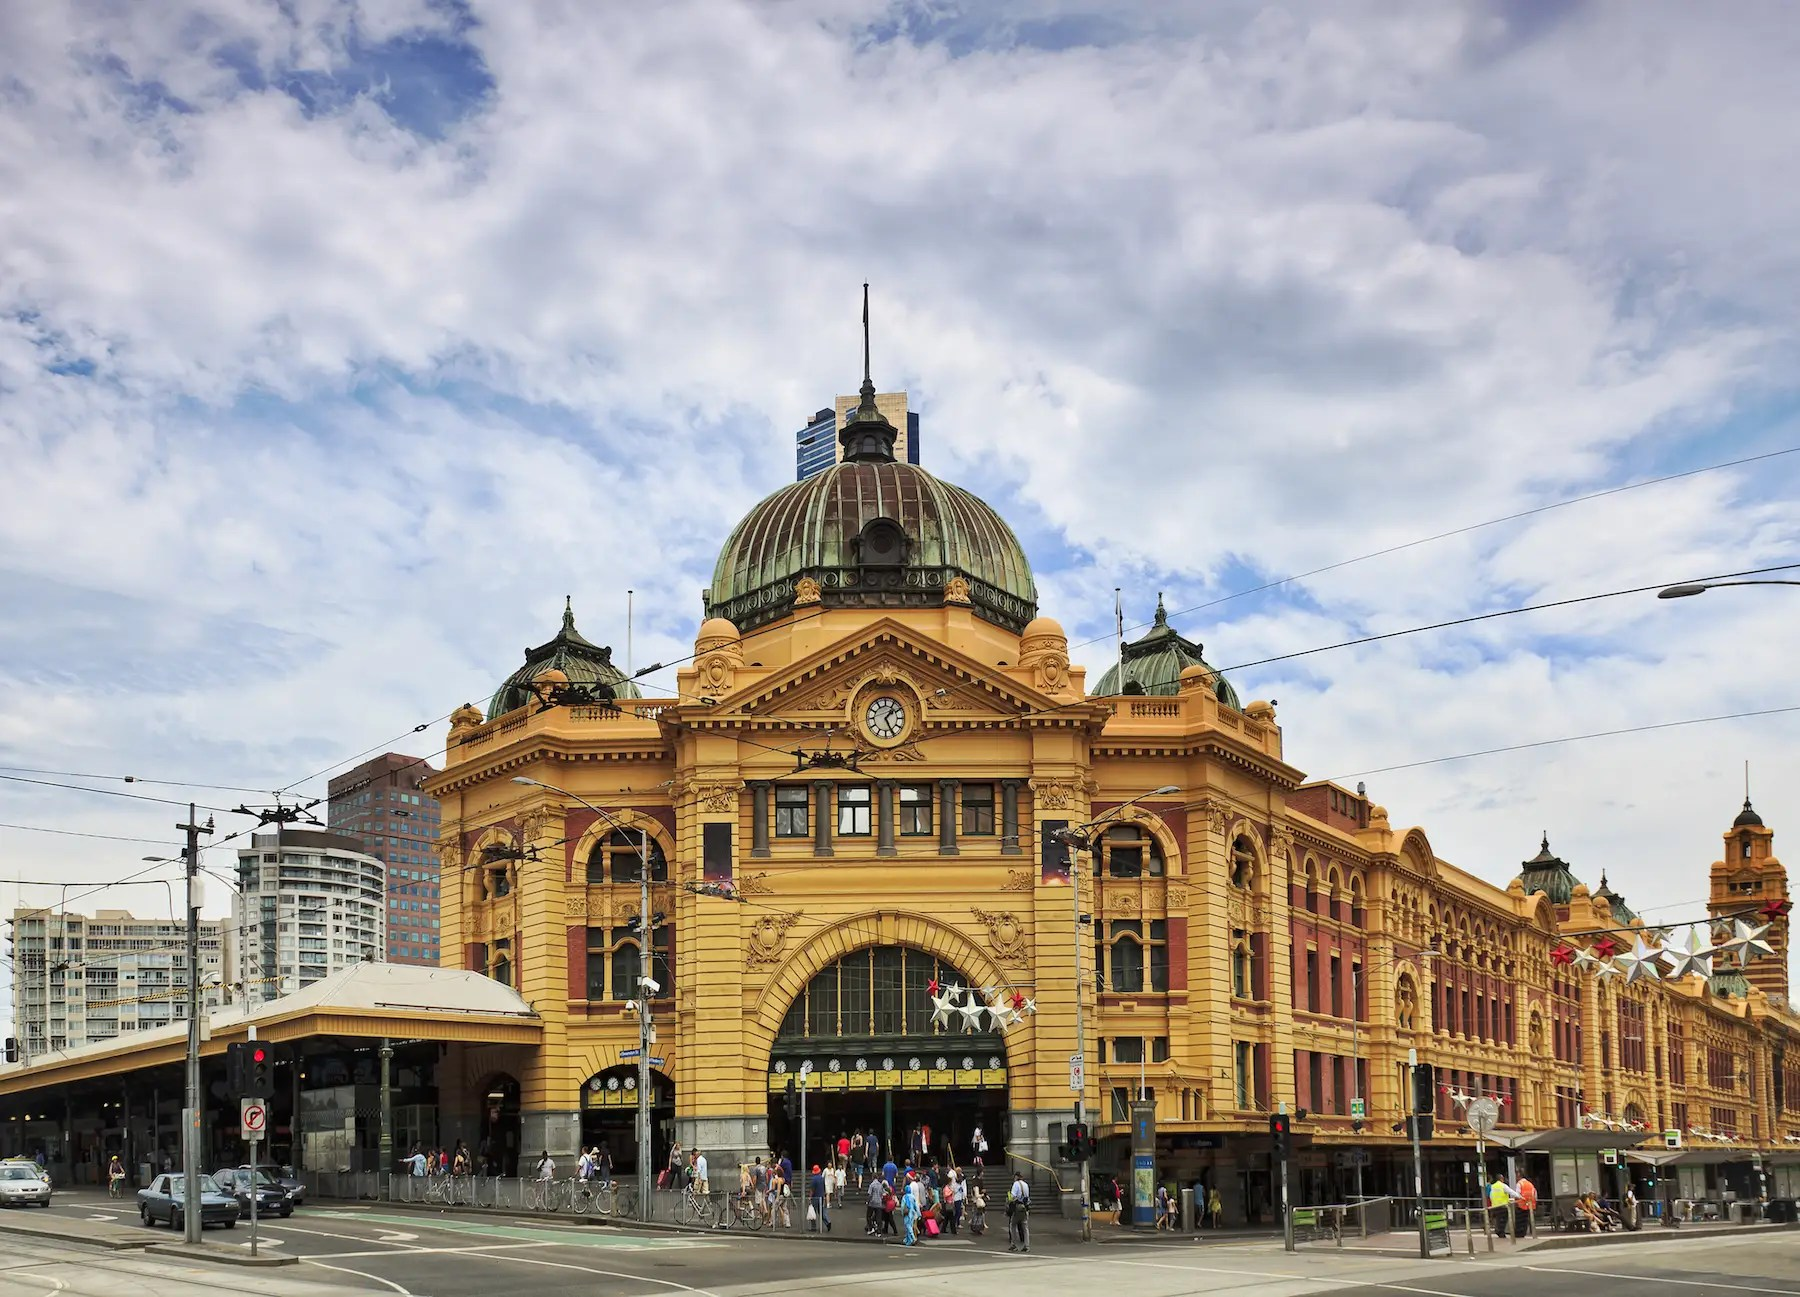 74. The striking Flinders Street Station in Melbourne is designed in a French Renaissance style. It's the busiest train station in Australia, serving more than 90,000 passengers every weekday.